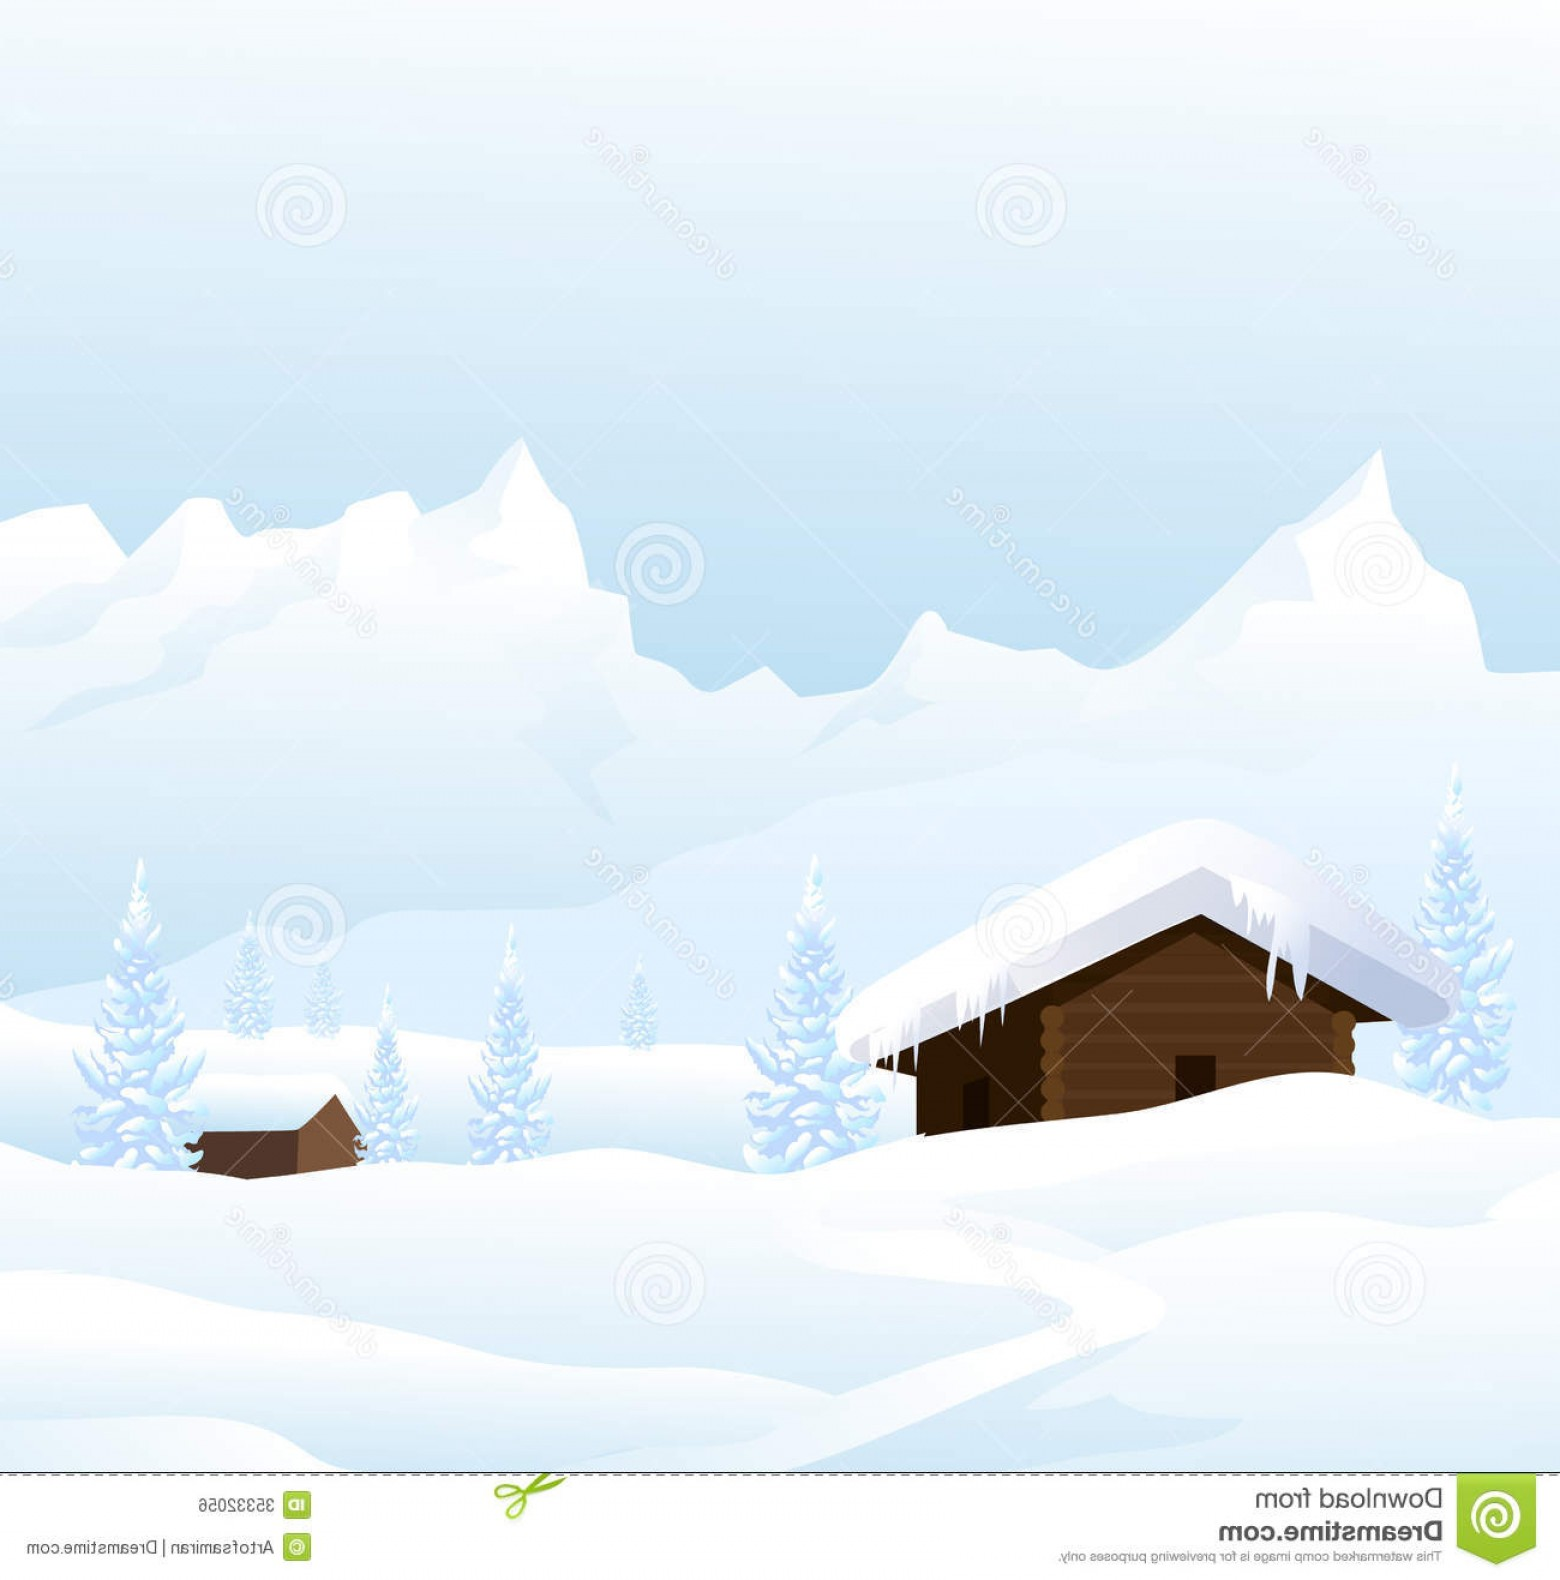 Free Winter Vector: Royalty Free Stock Image Winter Landscape Vector Image